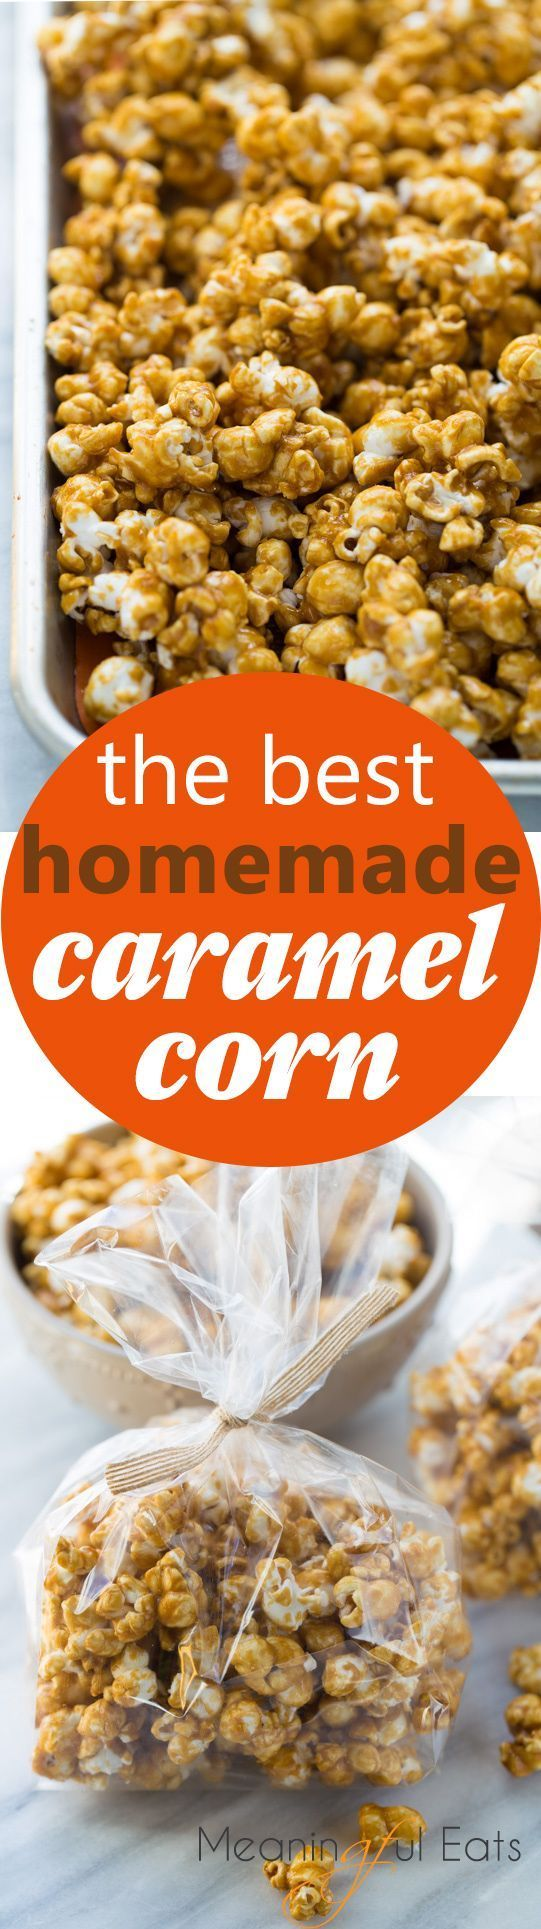 The Best Homemade Caramel Corn! Crispy caramel corn with the perfect mix of… (Sweet Recipes Candies)